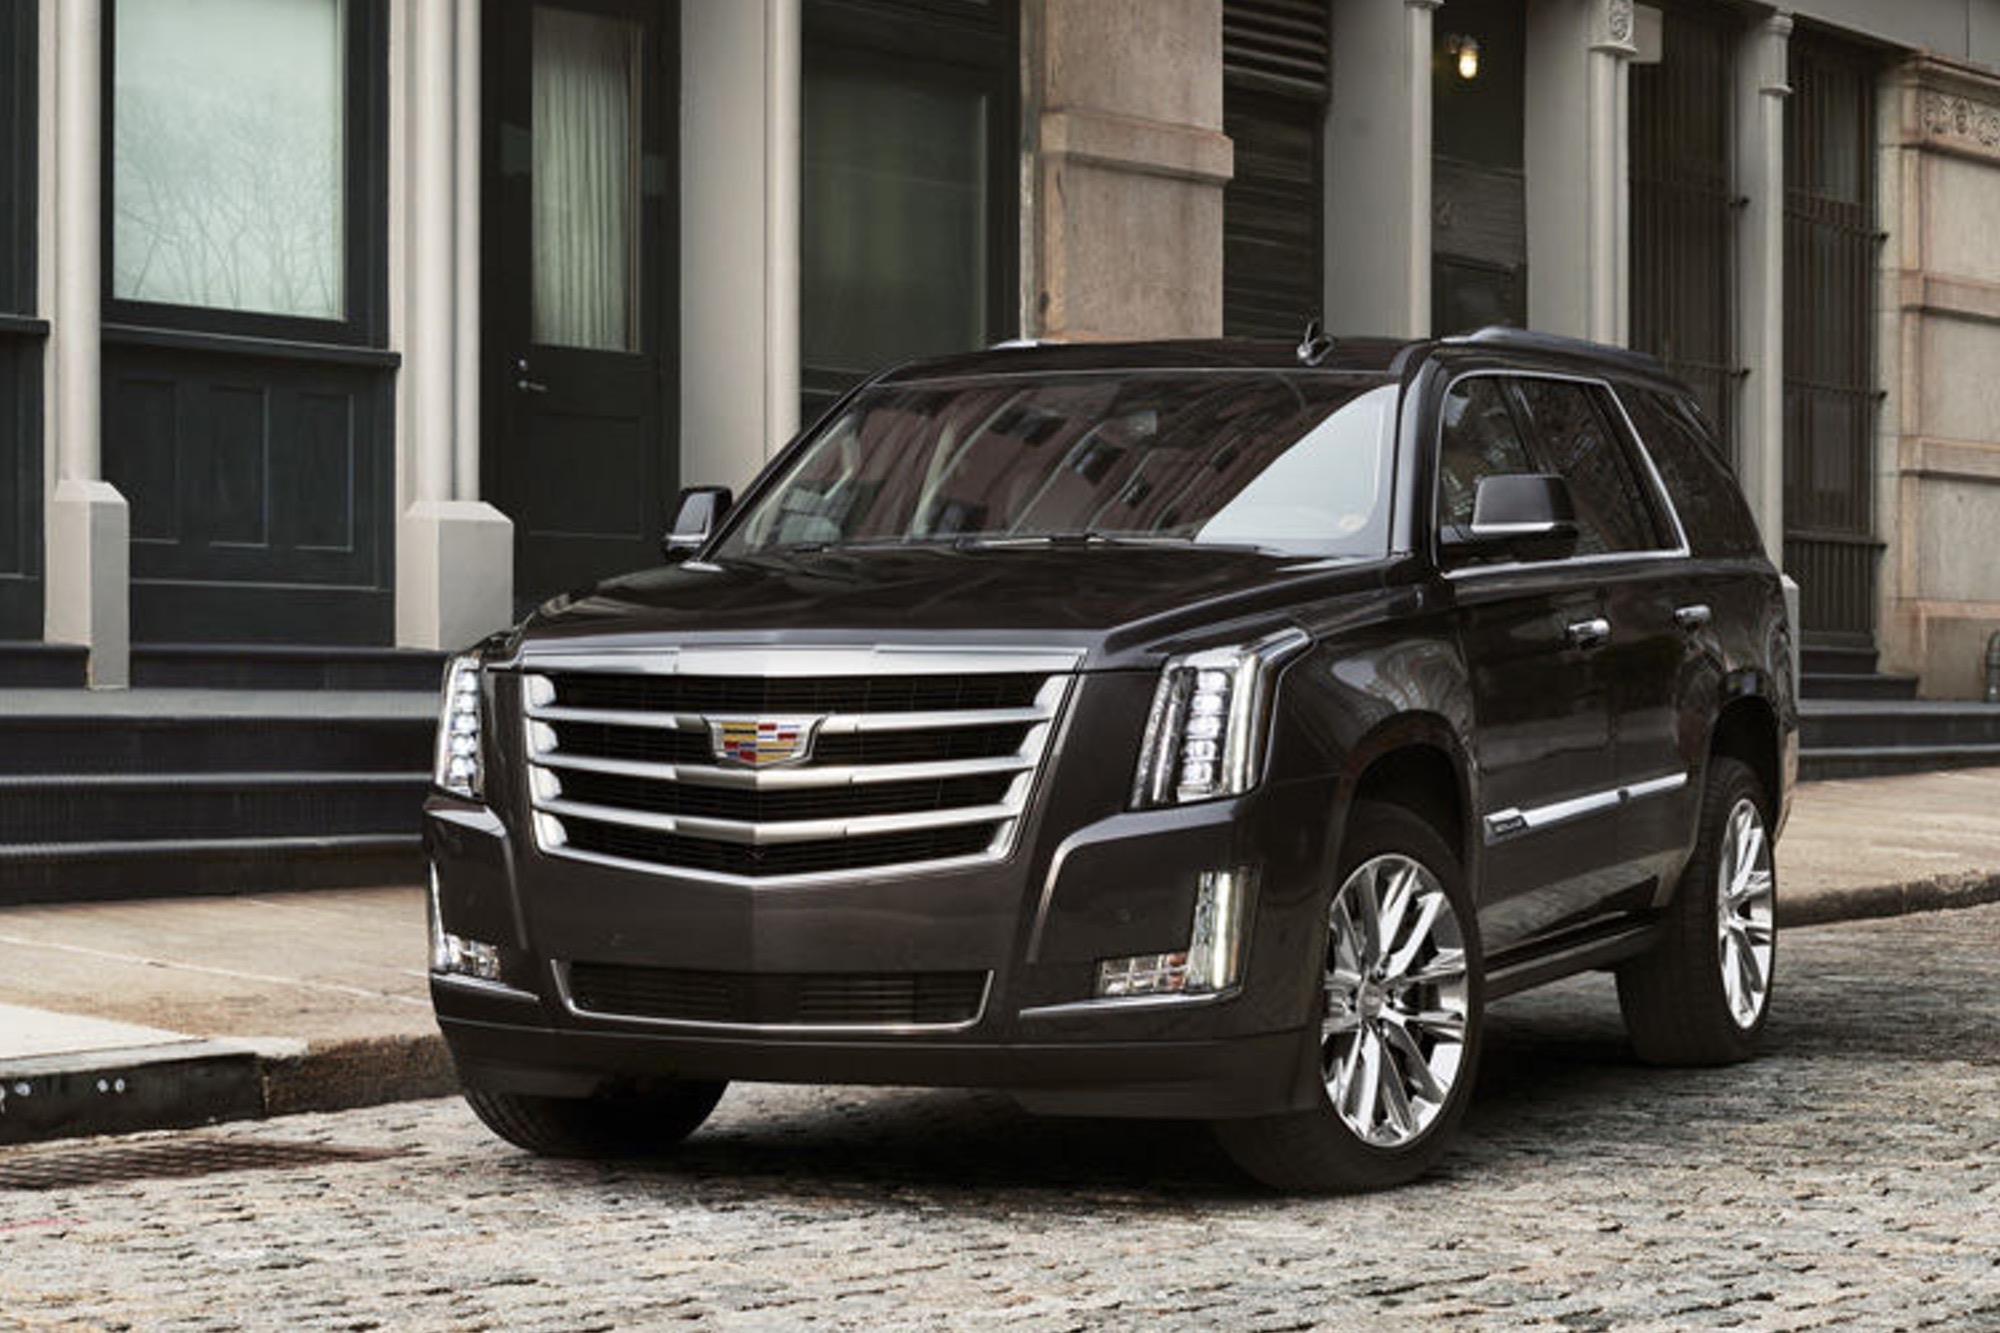 49 Concept of Price Of 2020 Cadillac Escalade Spy Shoot for Price Of 2020 Cadillac Escalade